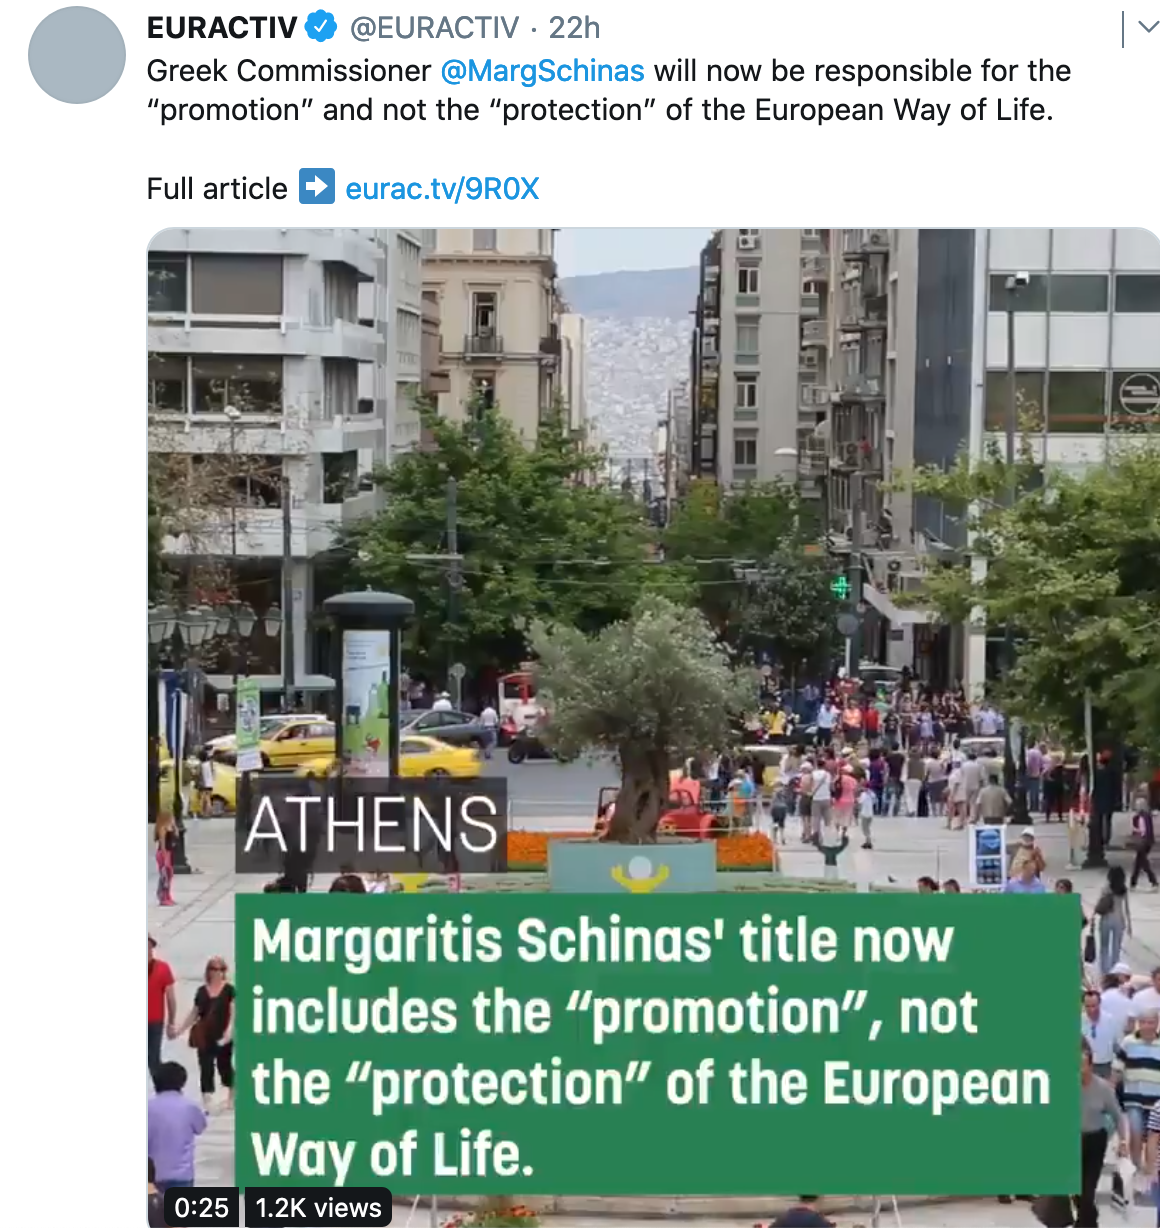 european way of life-twitter-2019-11-15